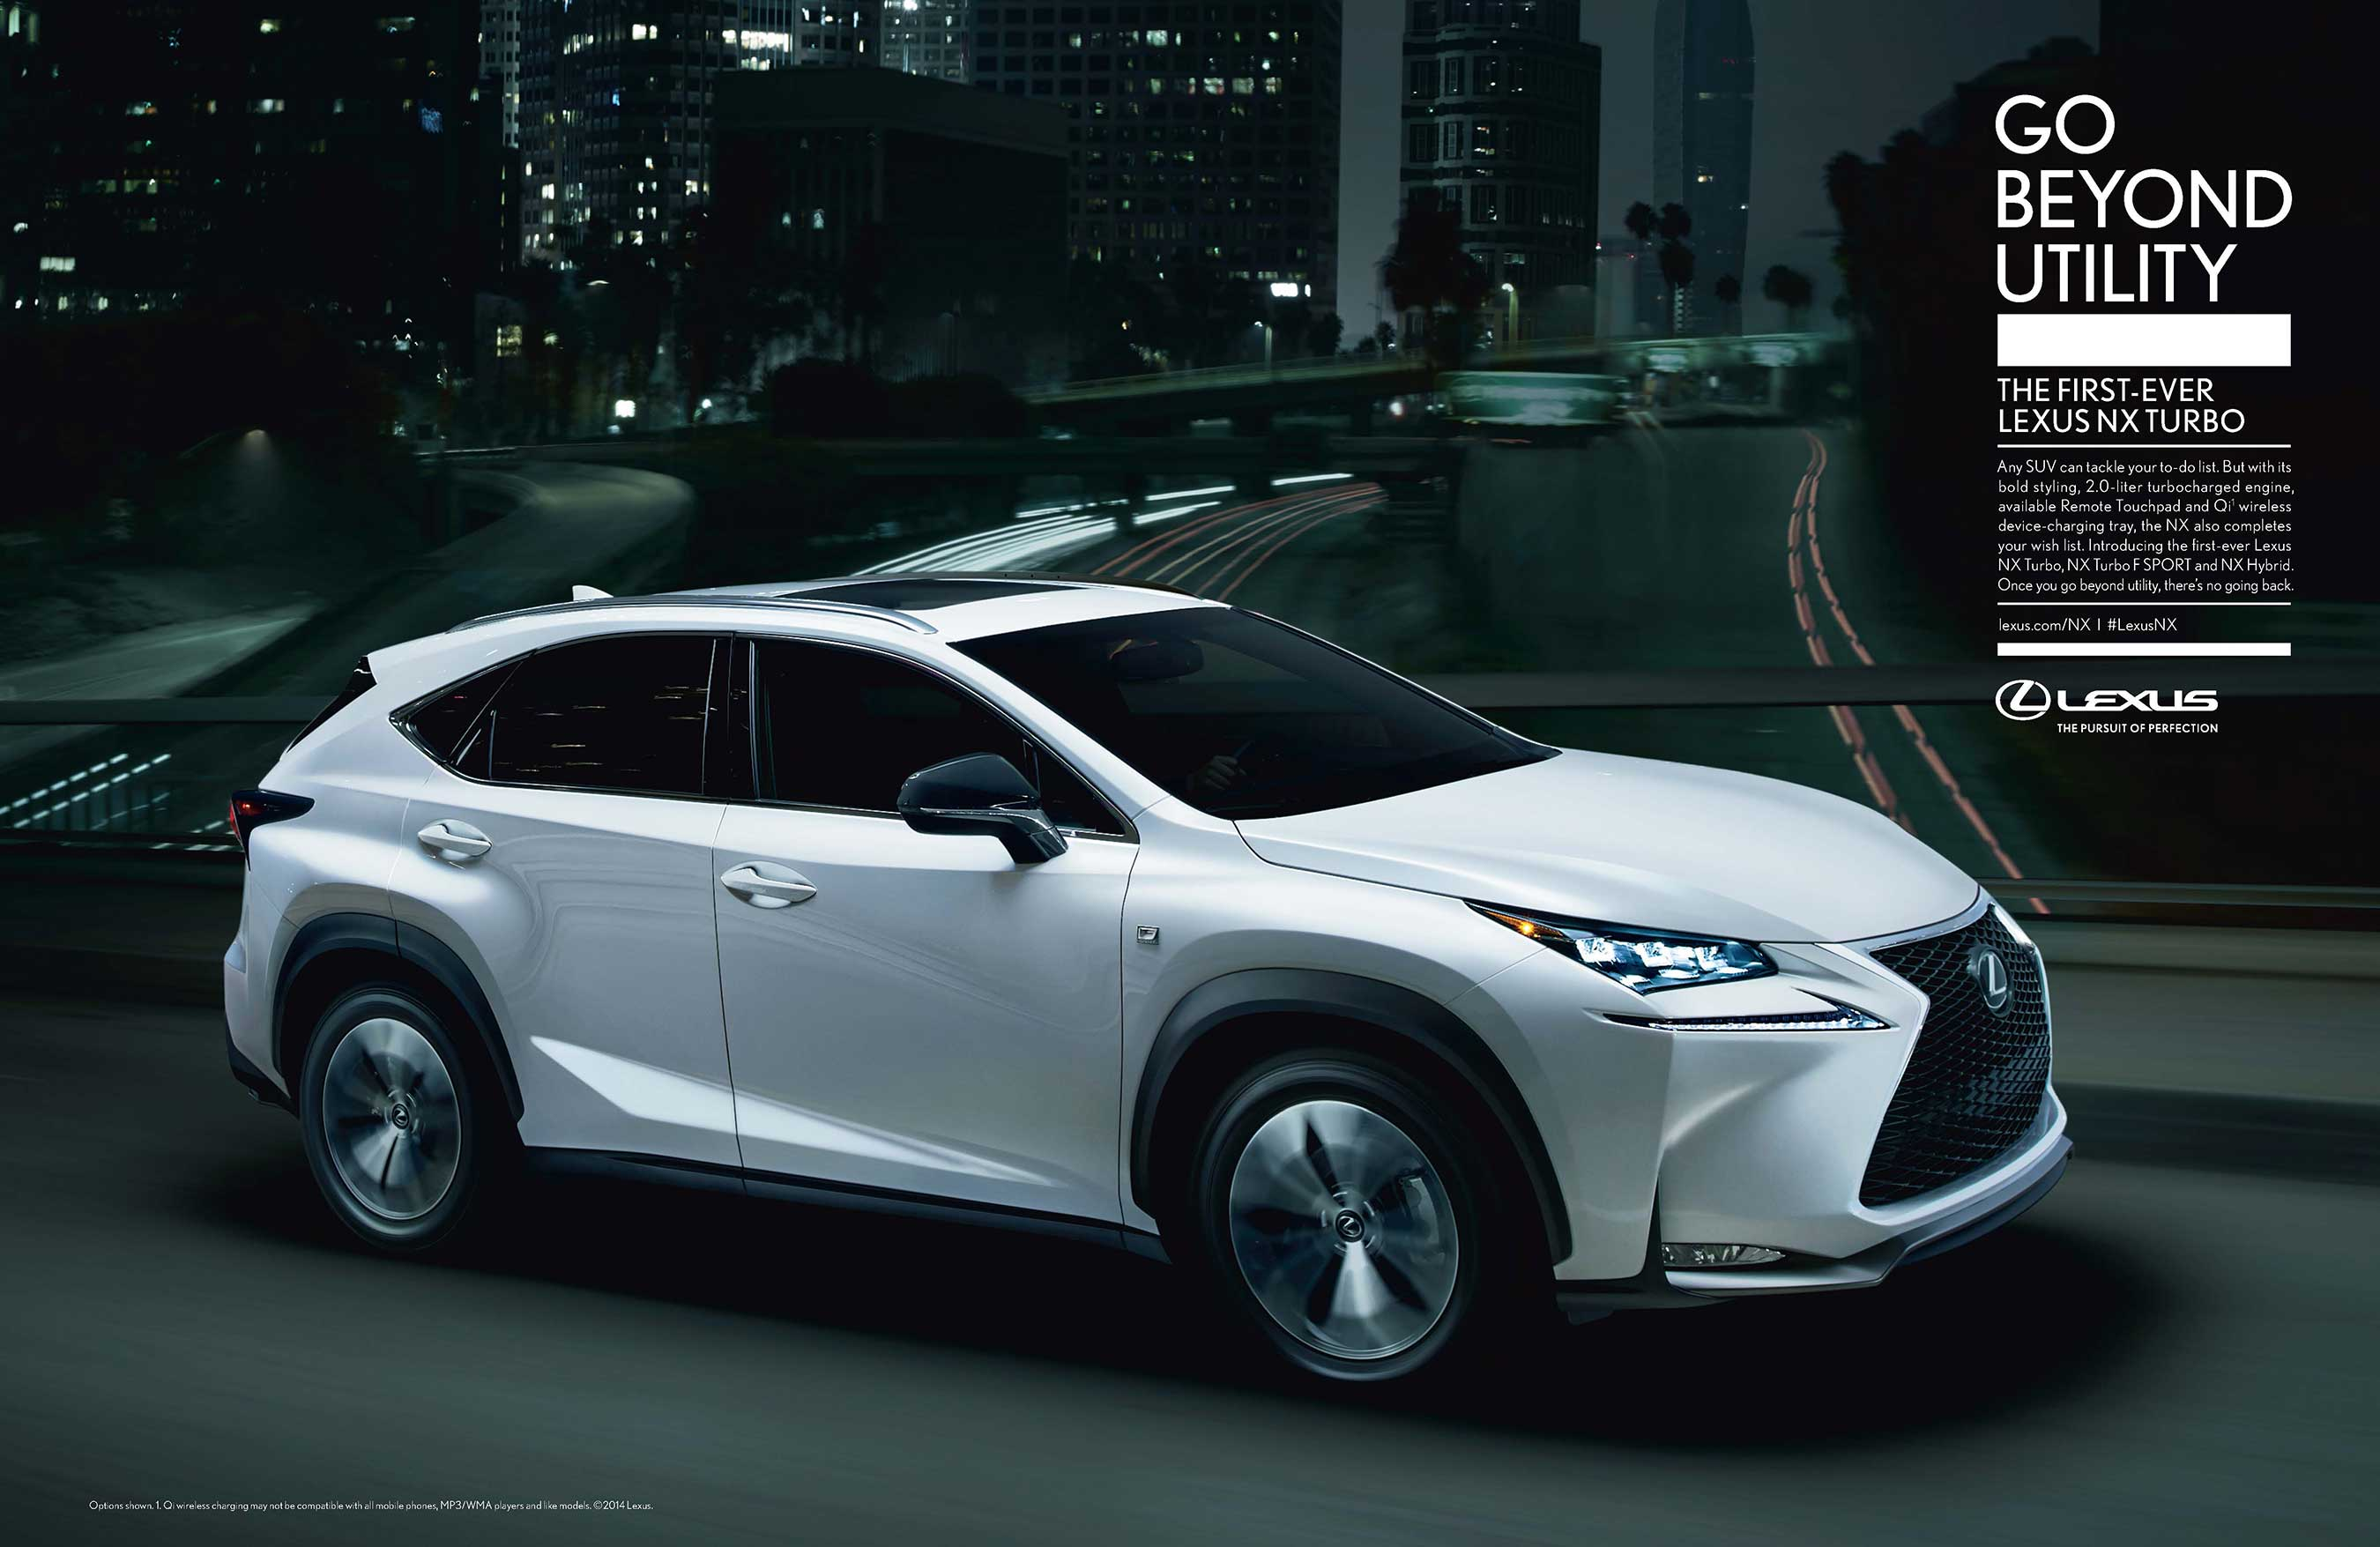 Lexus Nx Hybrid >> Lexus Goes Beyond Utility With First-Ever NX Crossover